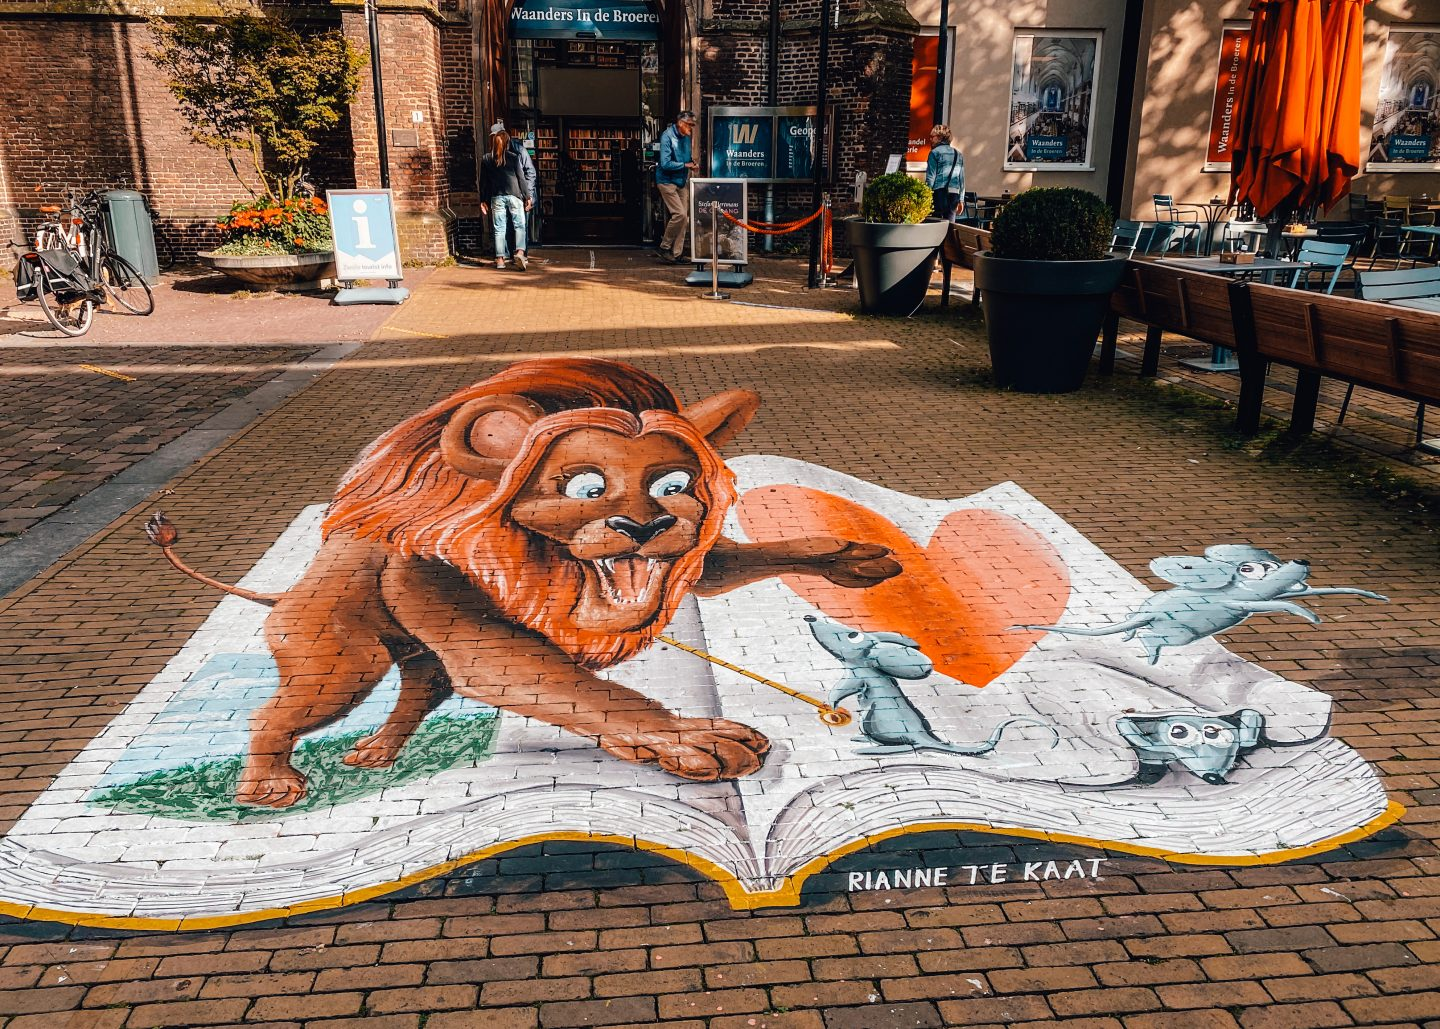 Street art of a book & a lion on the street of Zwolle